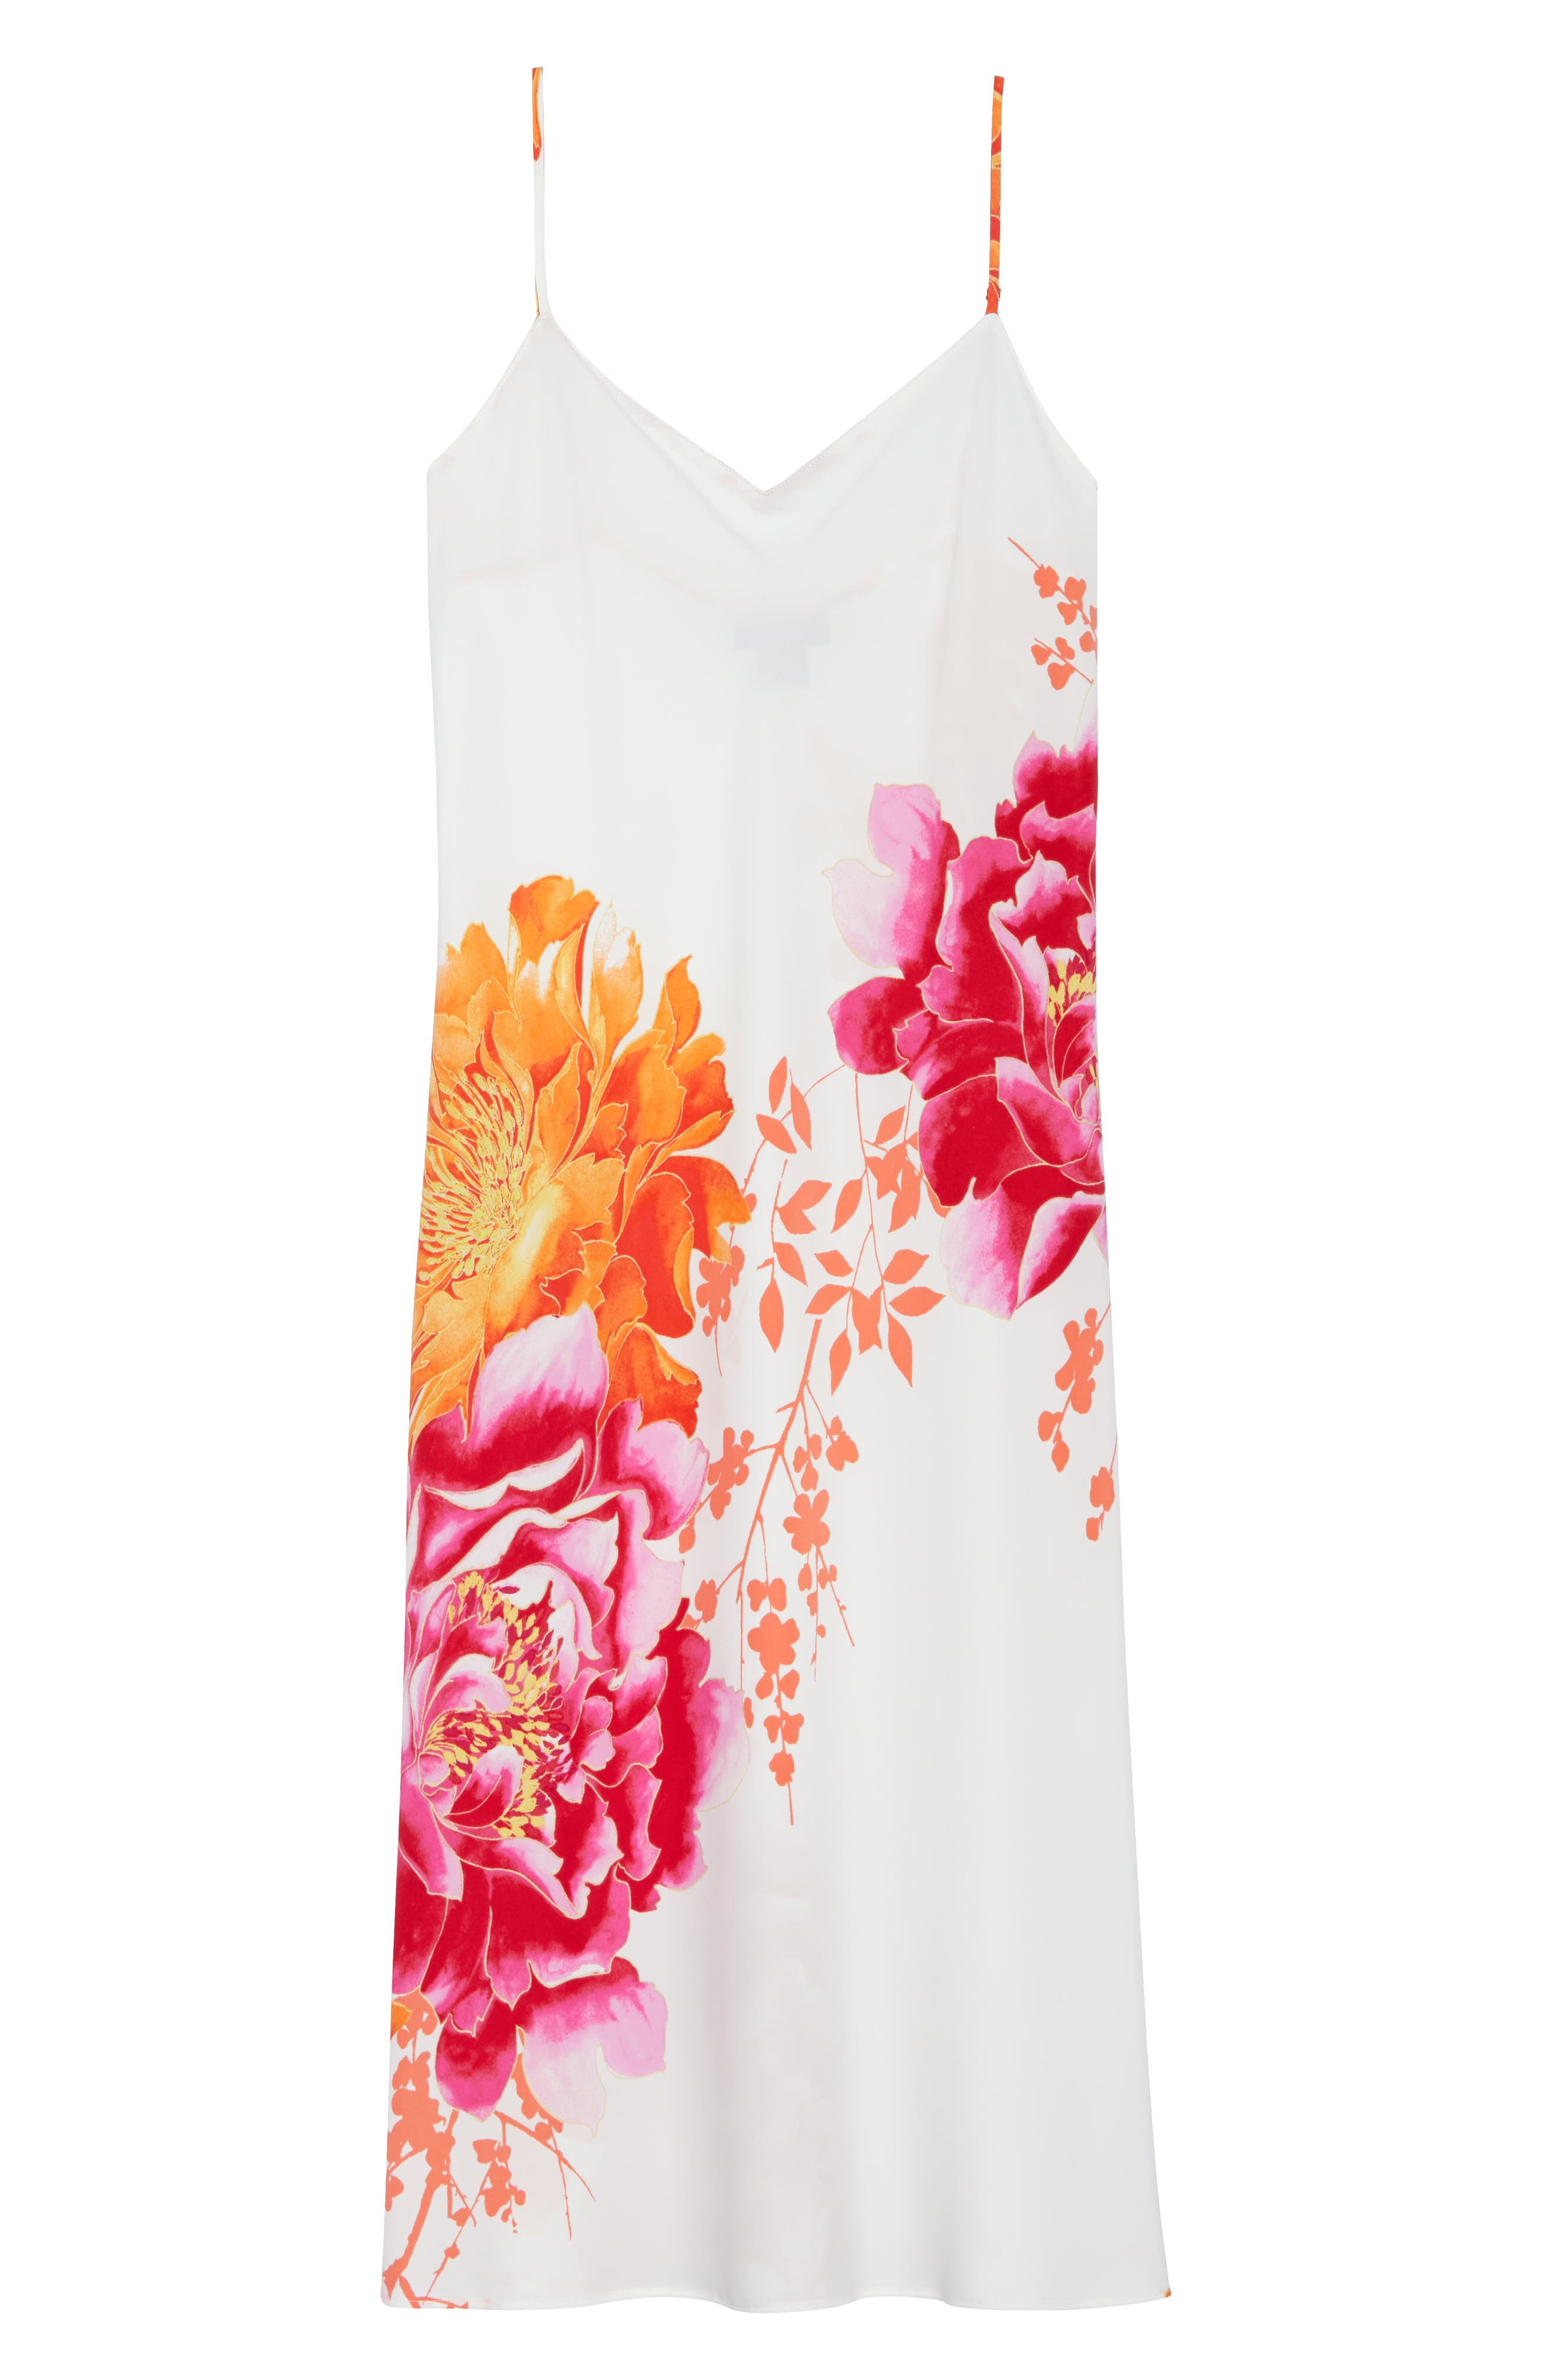 Bali Floral Print Slip,                             Alternate thumbnail 6, color,                             100